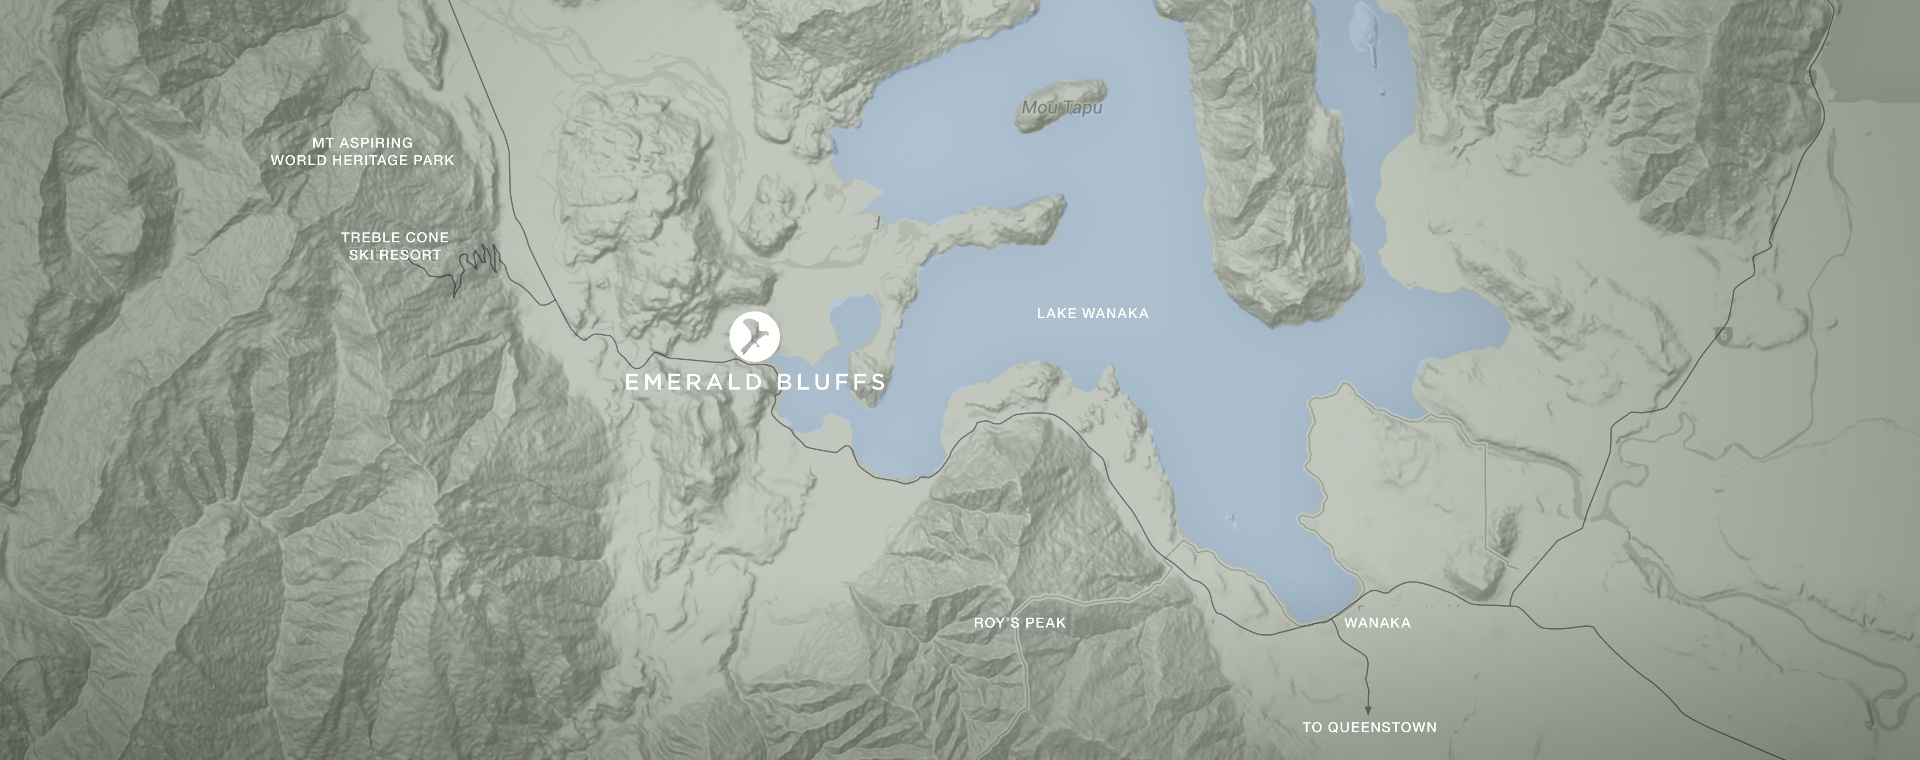 Emerald Bluffs location map